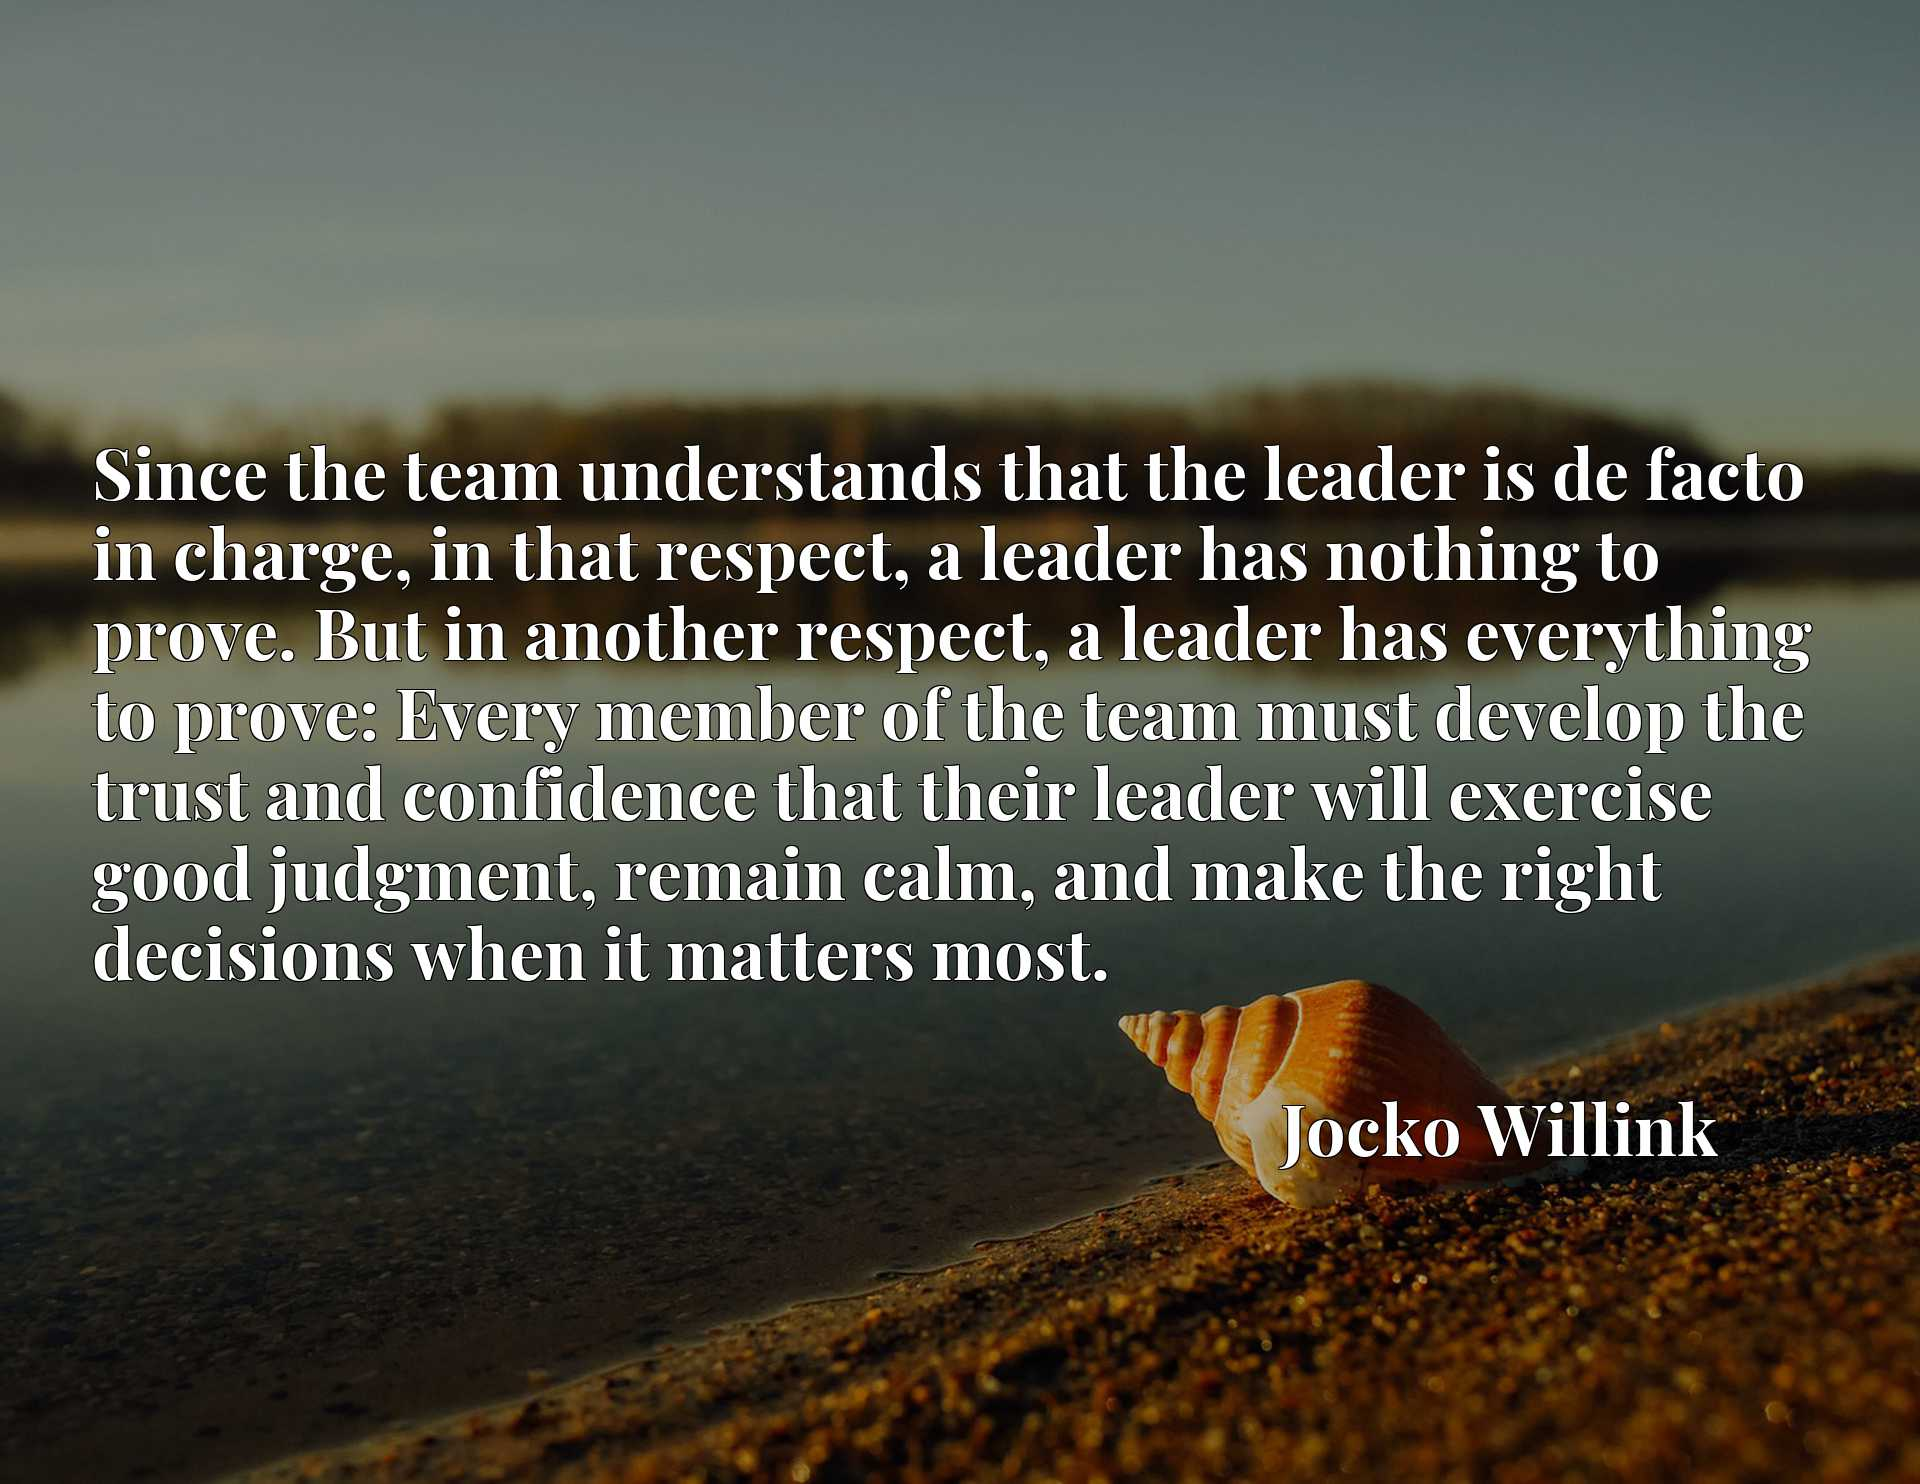 Since the team understands that the leader is de facto in charge, in that respect, a leader has nothing to prove. But in another respect, a leader has everything to prove: Every member of the team must develop the trust and confidence that their leader will exercise good judgment, remain calm, and make the right decisions when it matters most.